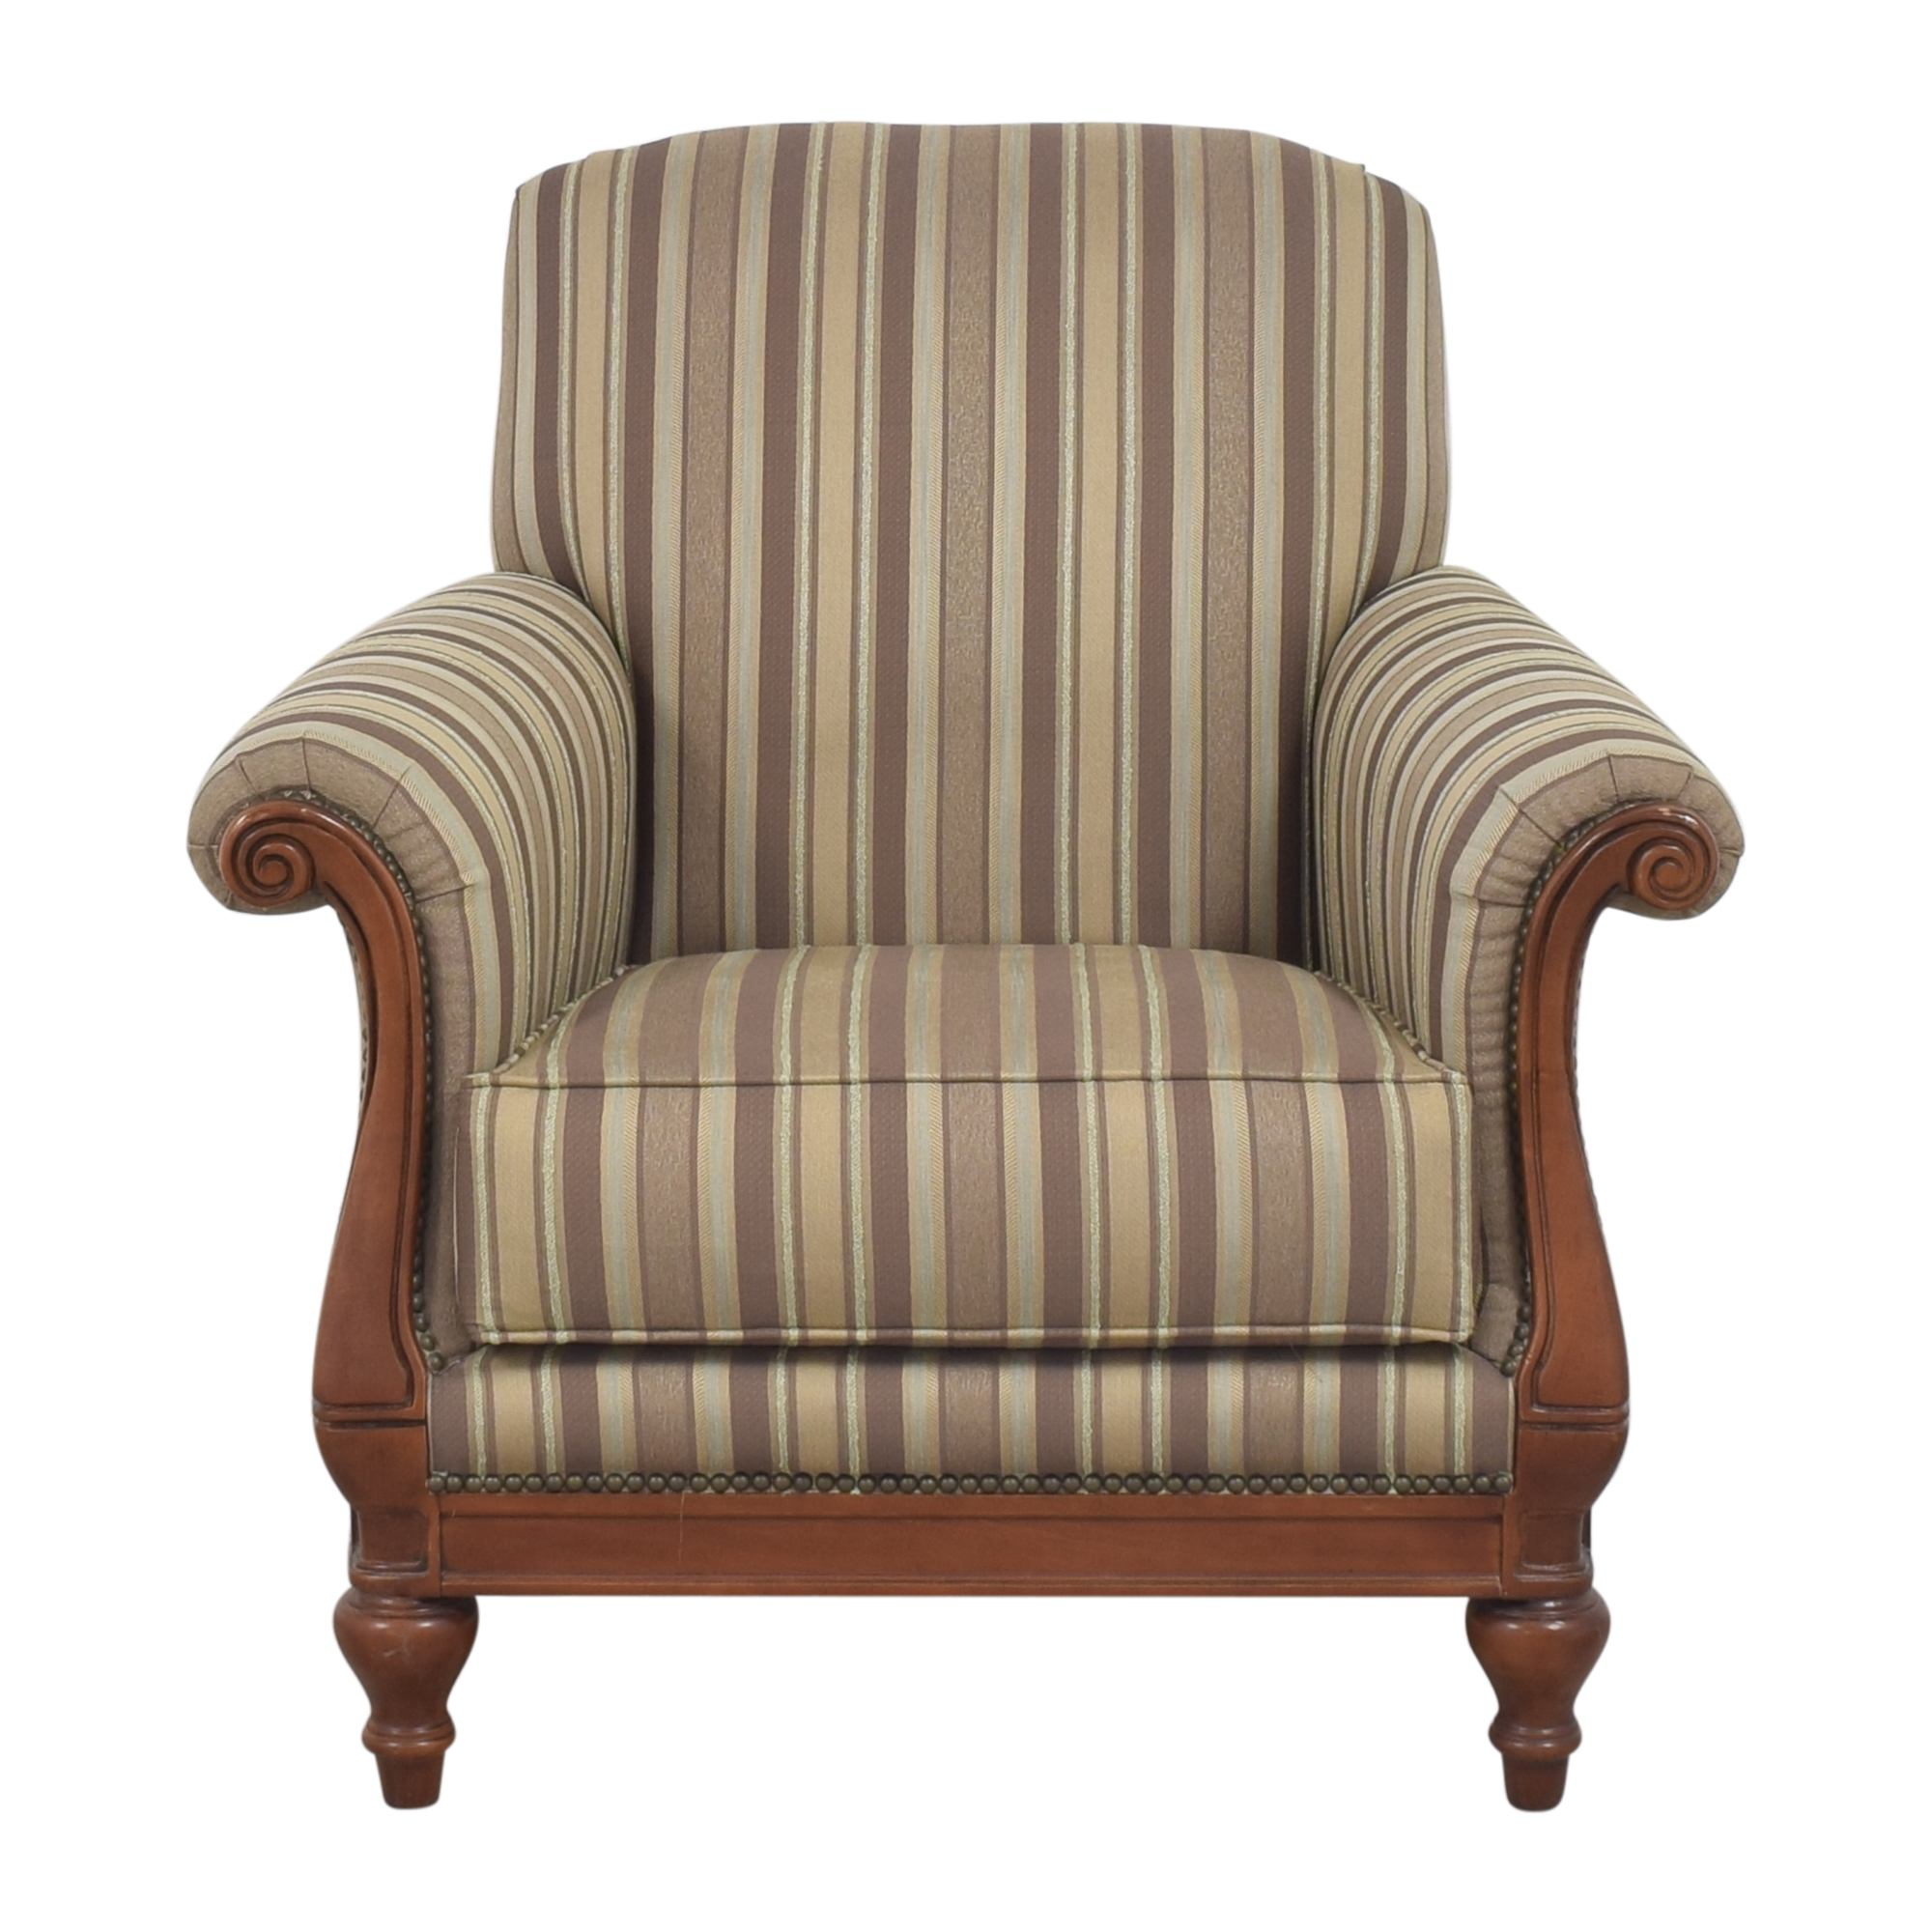 Thomasville Thomasville Stripe Accent Chair pa